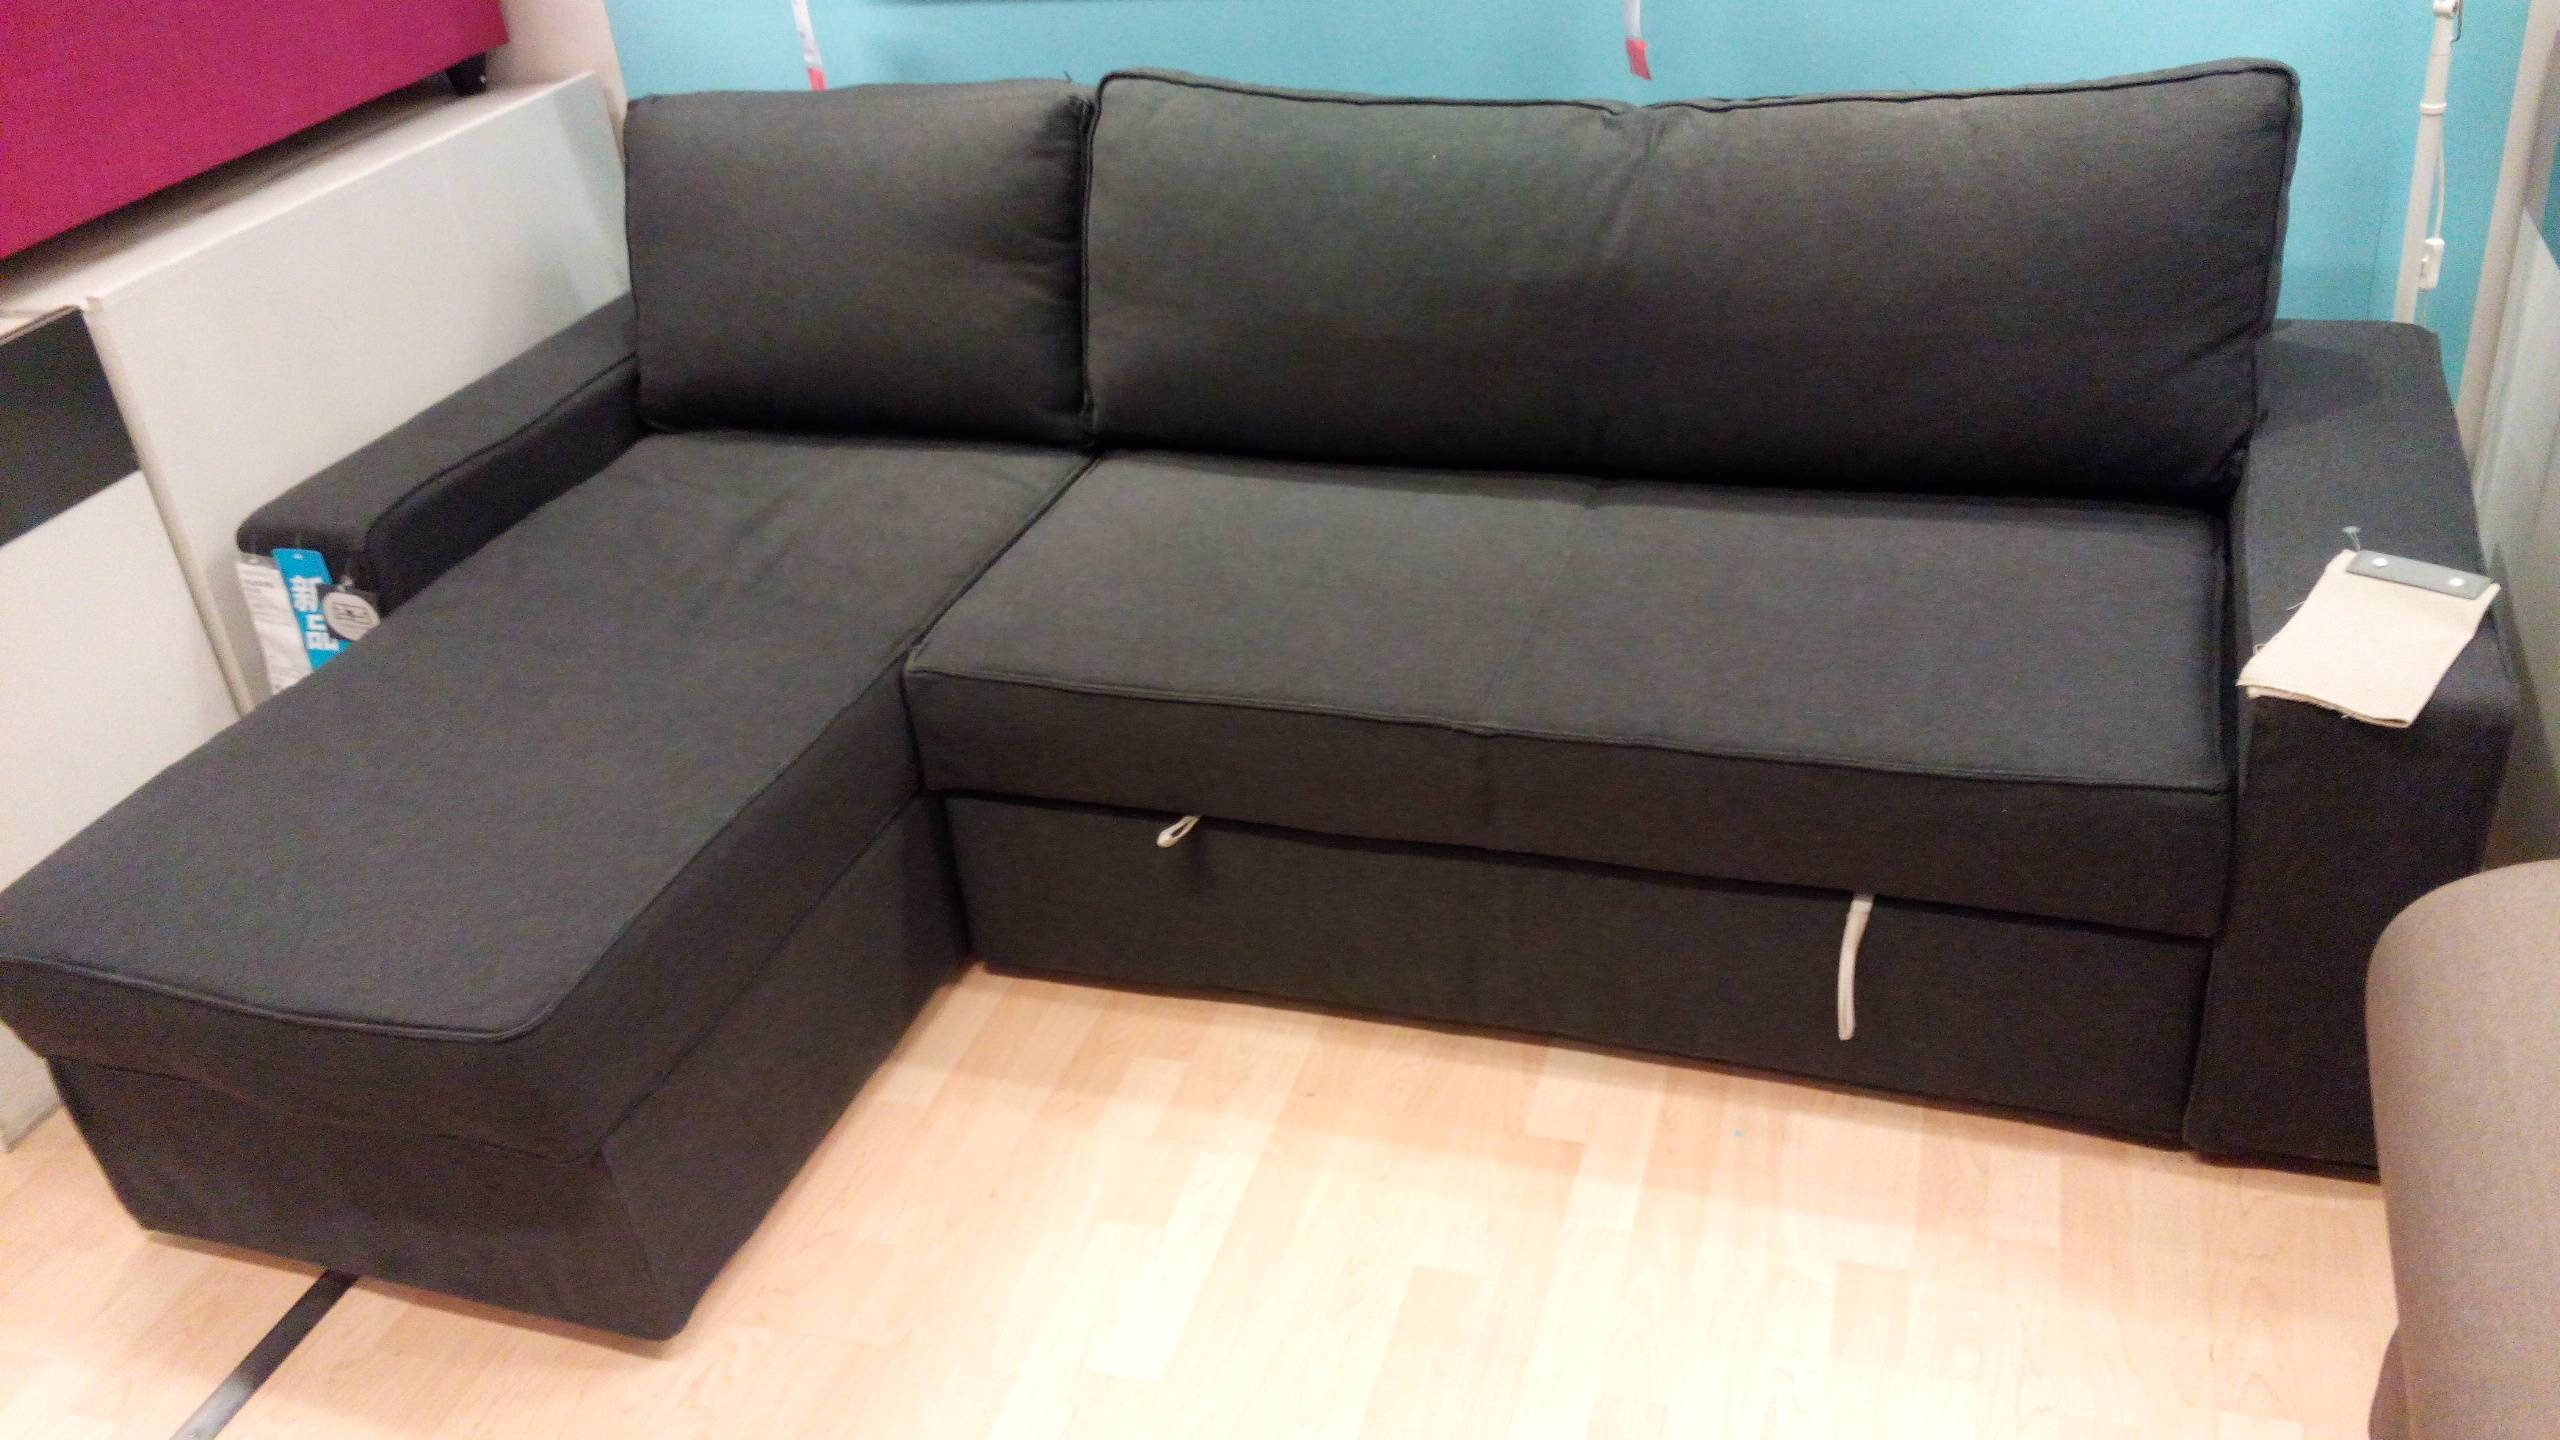 Ikea Vilasund And Backabro Review - Return Of The Sofa Bed Clones! within 2 Seat Sectional Sofas (Image 18 of 30)